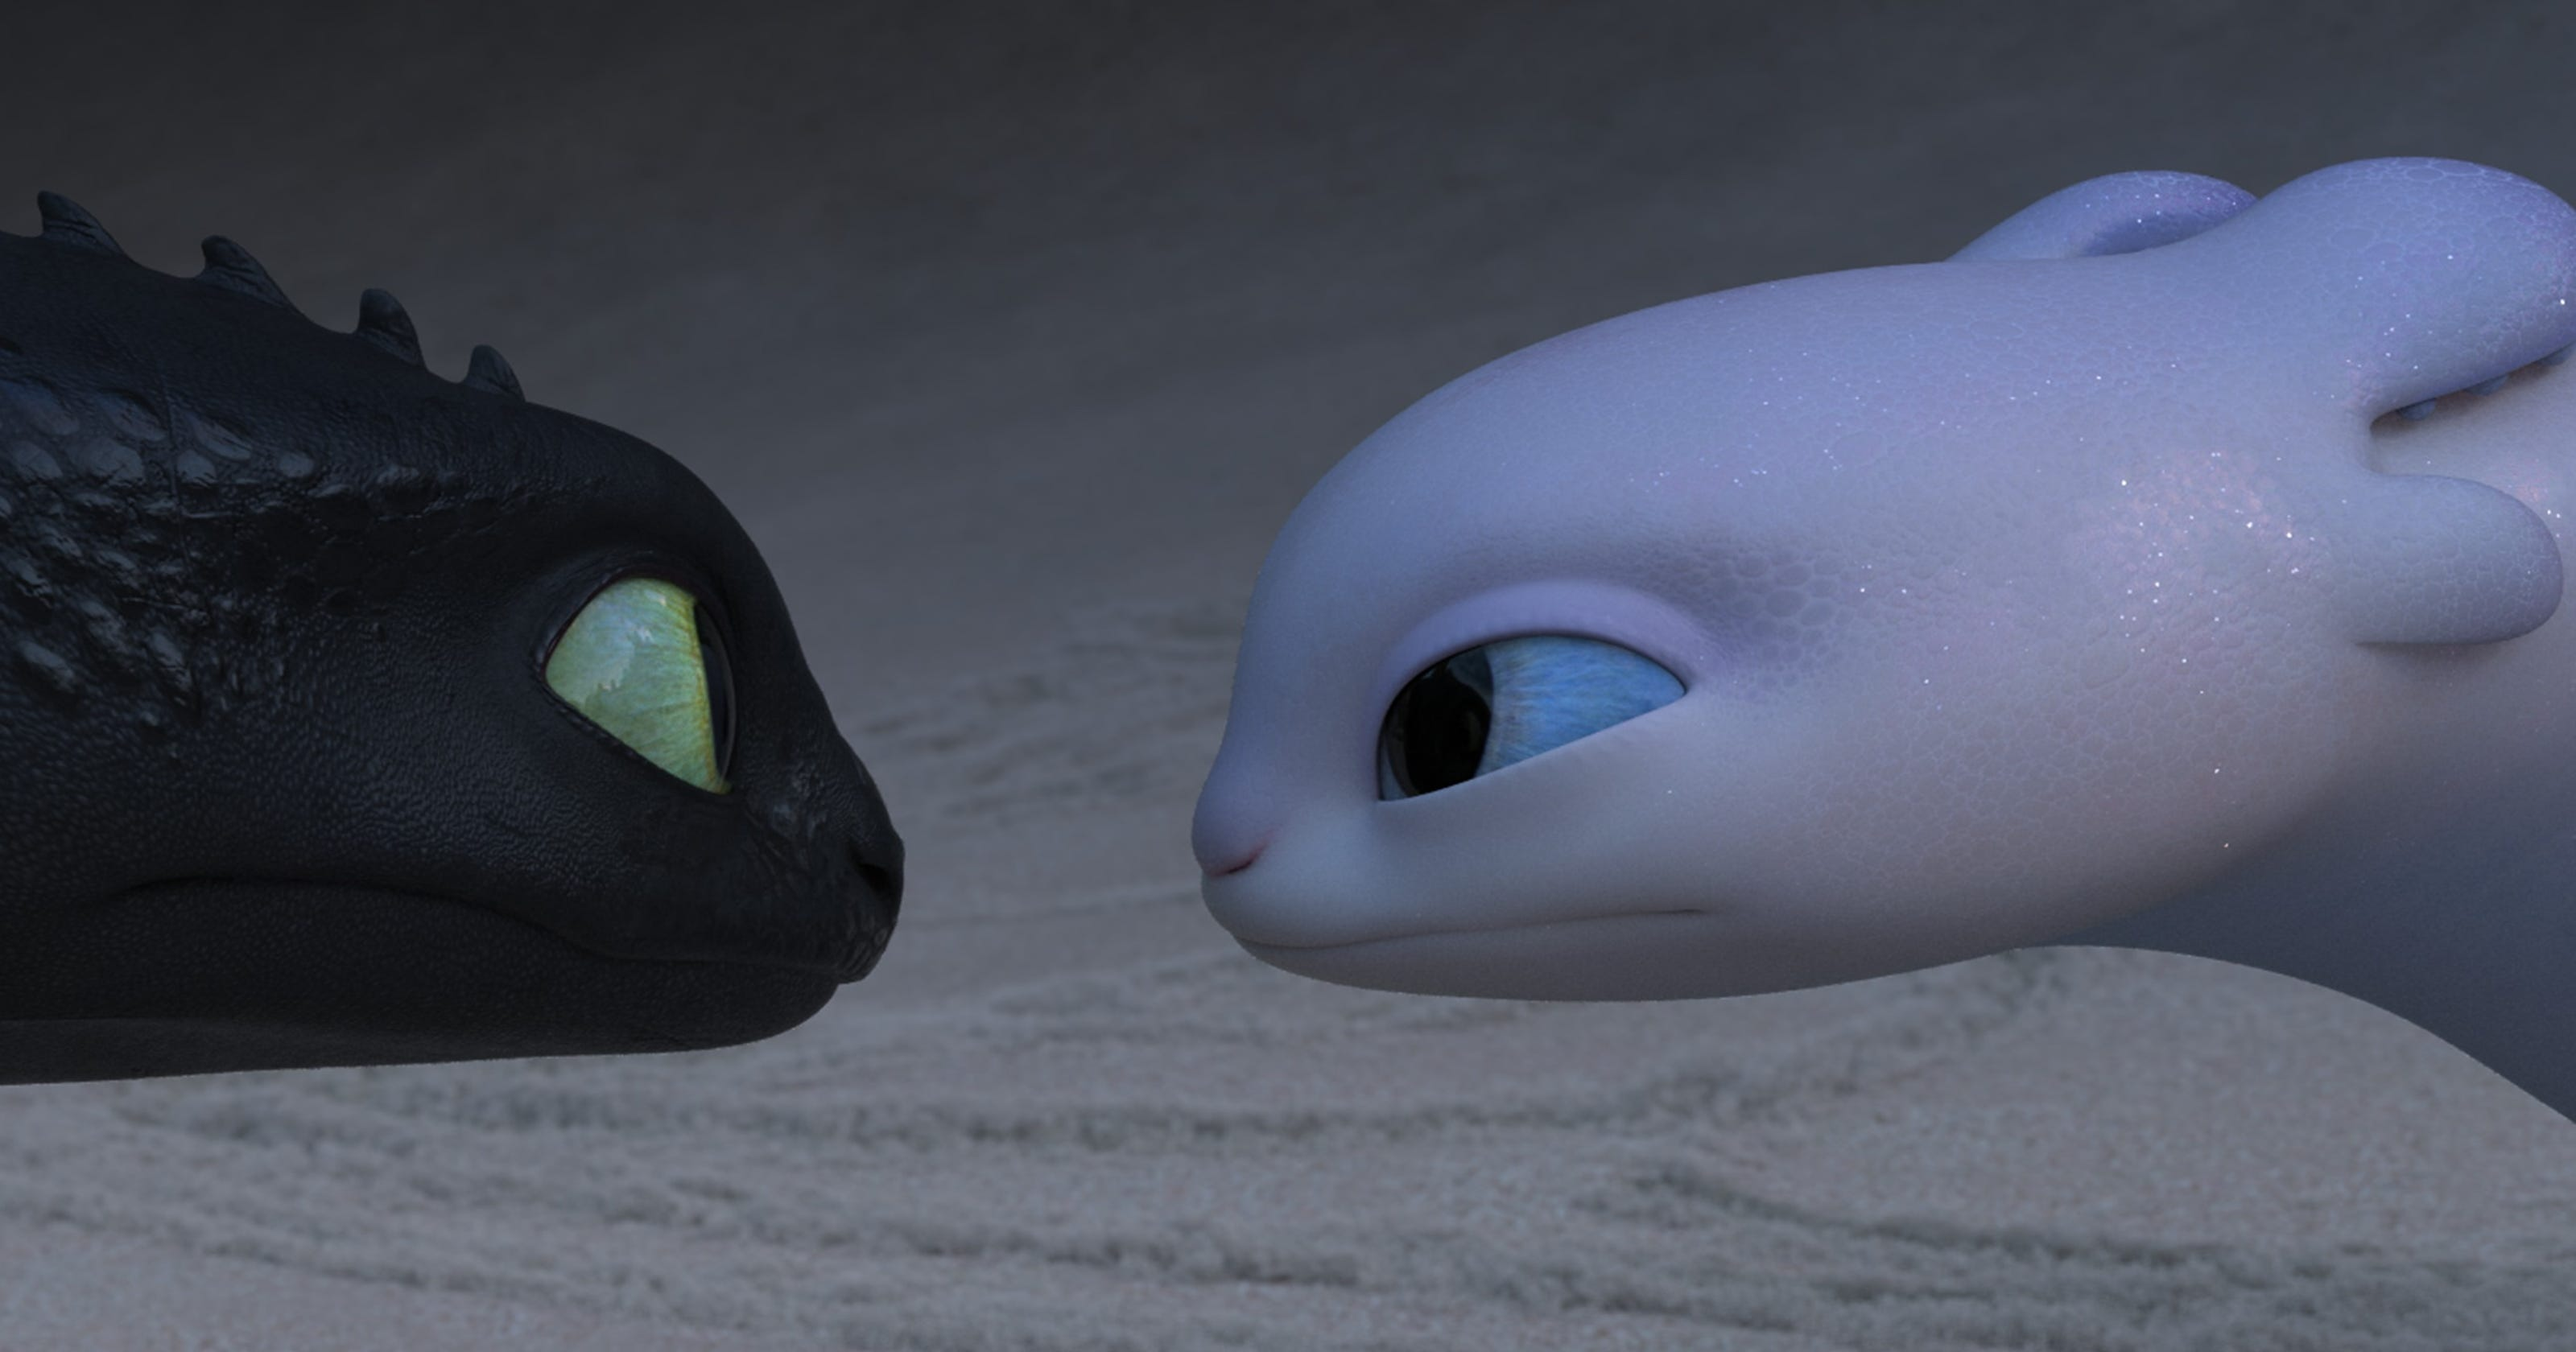 How to Train Your Dragon 3:' New trailer reveals Toothless